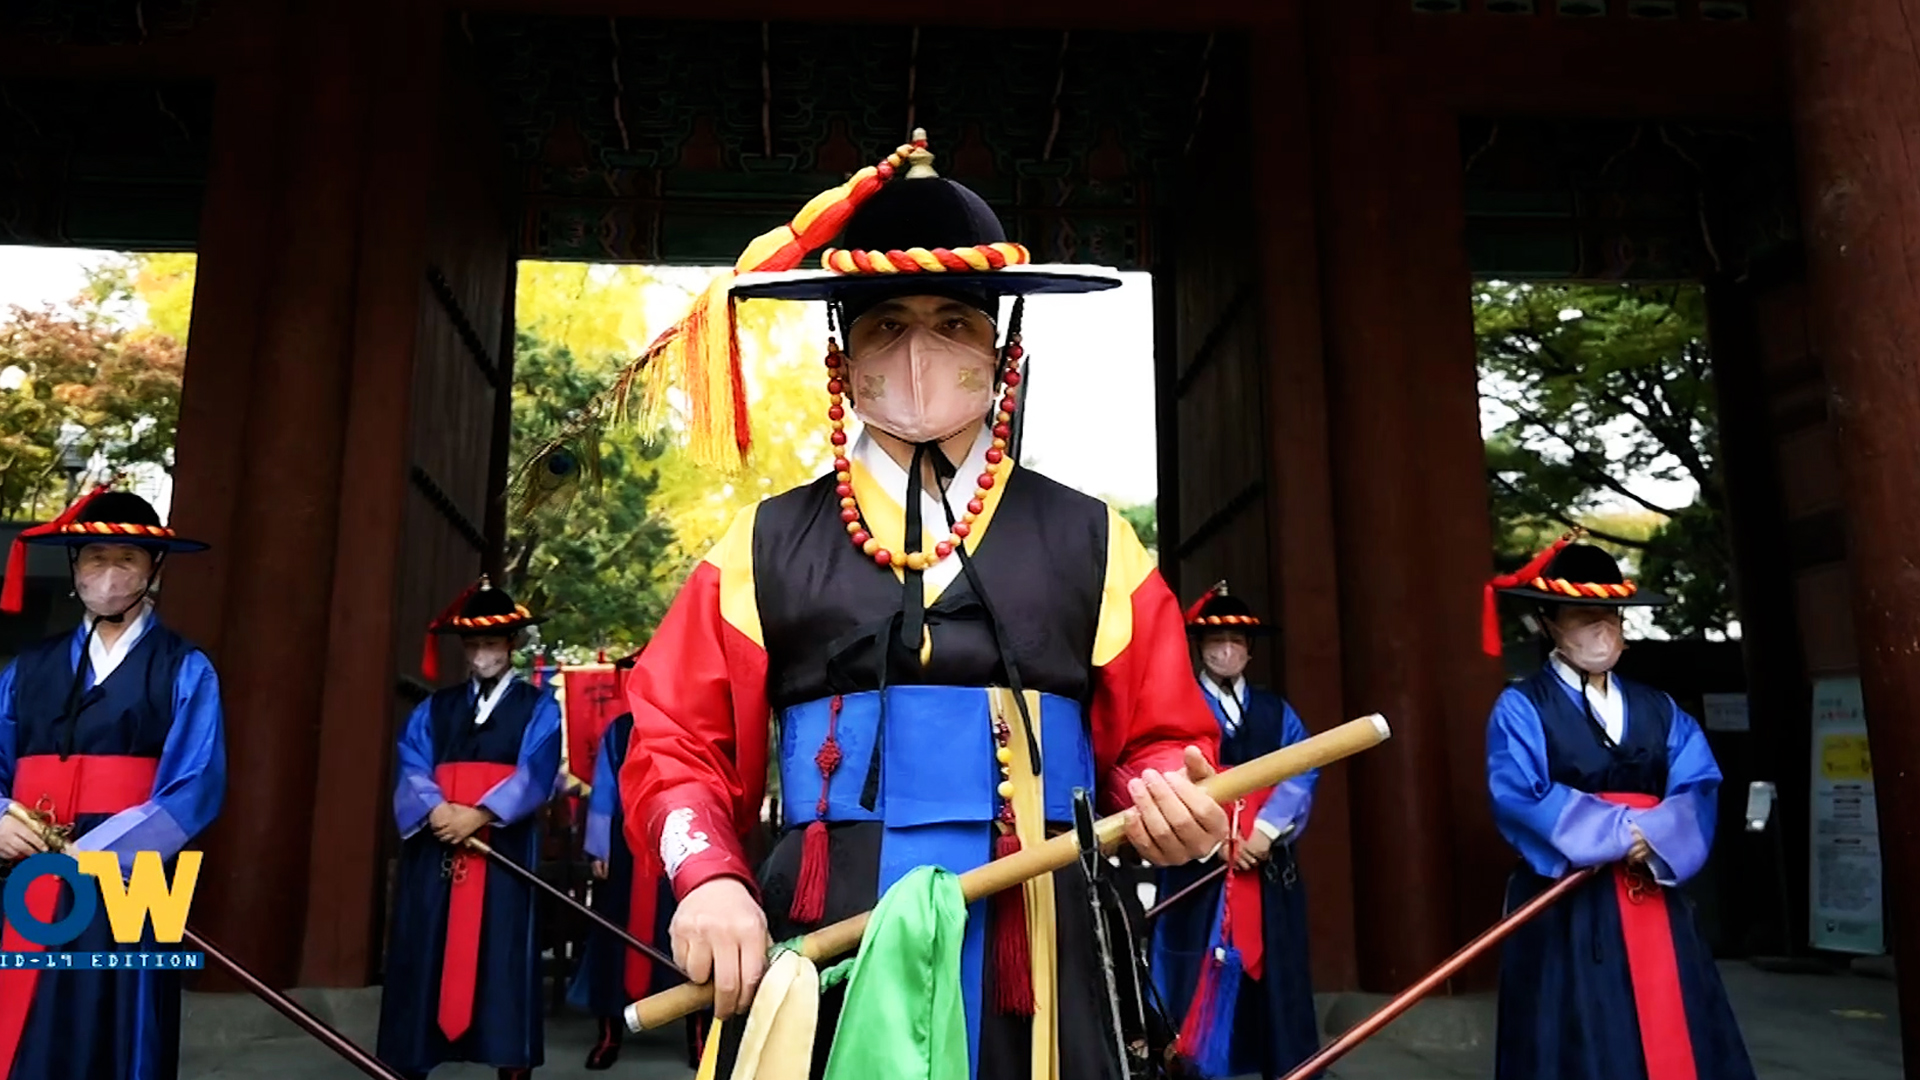 Ep.123 [ Food Choices for a Healthy Planet / National Library of Korea Marking the 75th Anniversary / Royal Guards' Changing Ceremony at Deoksugung Palace ]